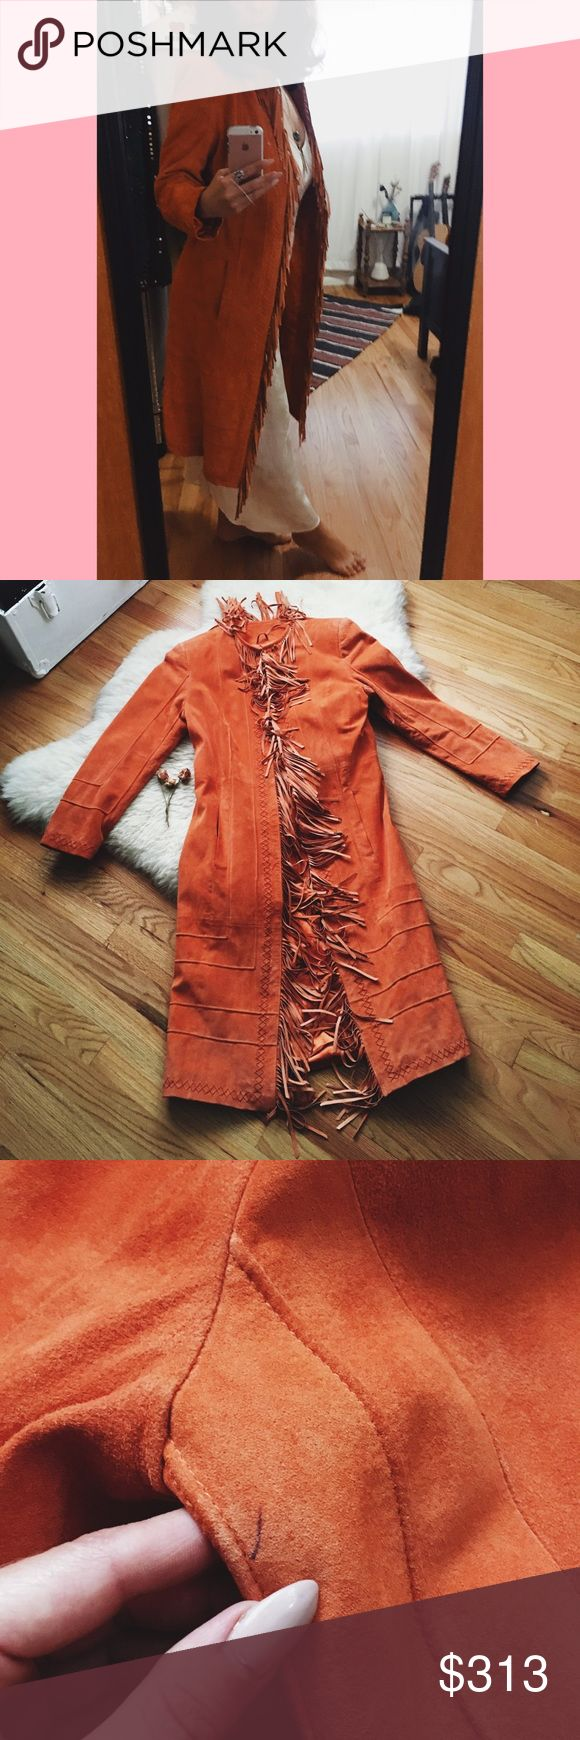 🍊Fringe Suede Jacket! 🍊 Vintage Pamela McCoy Orange 🍊 Suede Fringe Jacket! 100% Genuine Leather! This jacket is so comfy (fully lined) with beautiful stitching. It has 2 pockets as well! It's the perfect statement boho babe jacket!  Measurements coming soon but best fits a size small or medium! There is a small pen mark underneath one of the armpits. Other than that it's in perfect condition! Vintage Jackets & Coats Trench Coats